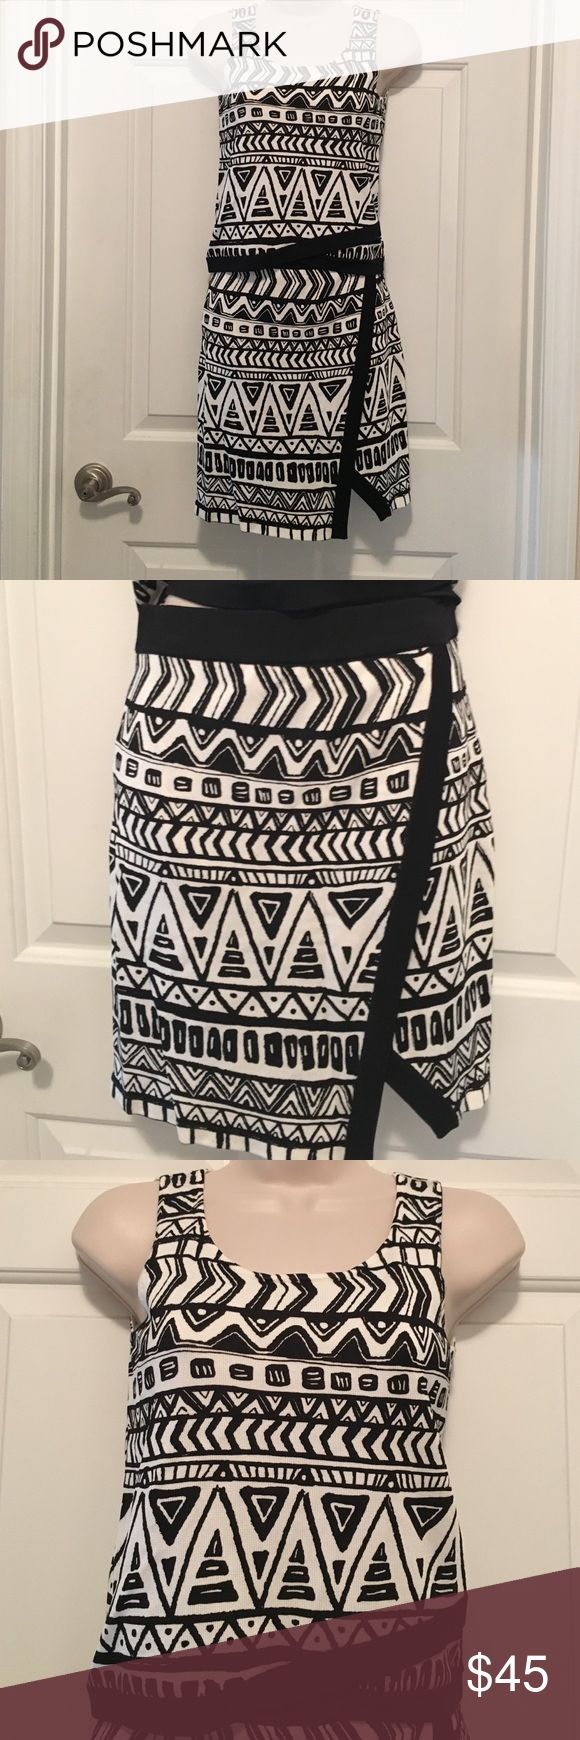 INC Skirt and top set.  Black and White.  Size PP INC International Concepts black and white patterned skirt and top. Size Petite/Petite.  Never worn!!  Perfect condition!!  Very comfortable.  Skirt has a soft, comfortable waist band and slips on. No zippers or buttons. Top pulls on as well.  Skirt has a sexy little slit at the leg. Can wear these pieces separately with other top or bottom for additional wardrobe options.  From clean, smoke-free home. INC International Concepts Skirts Skirt…